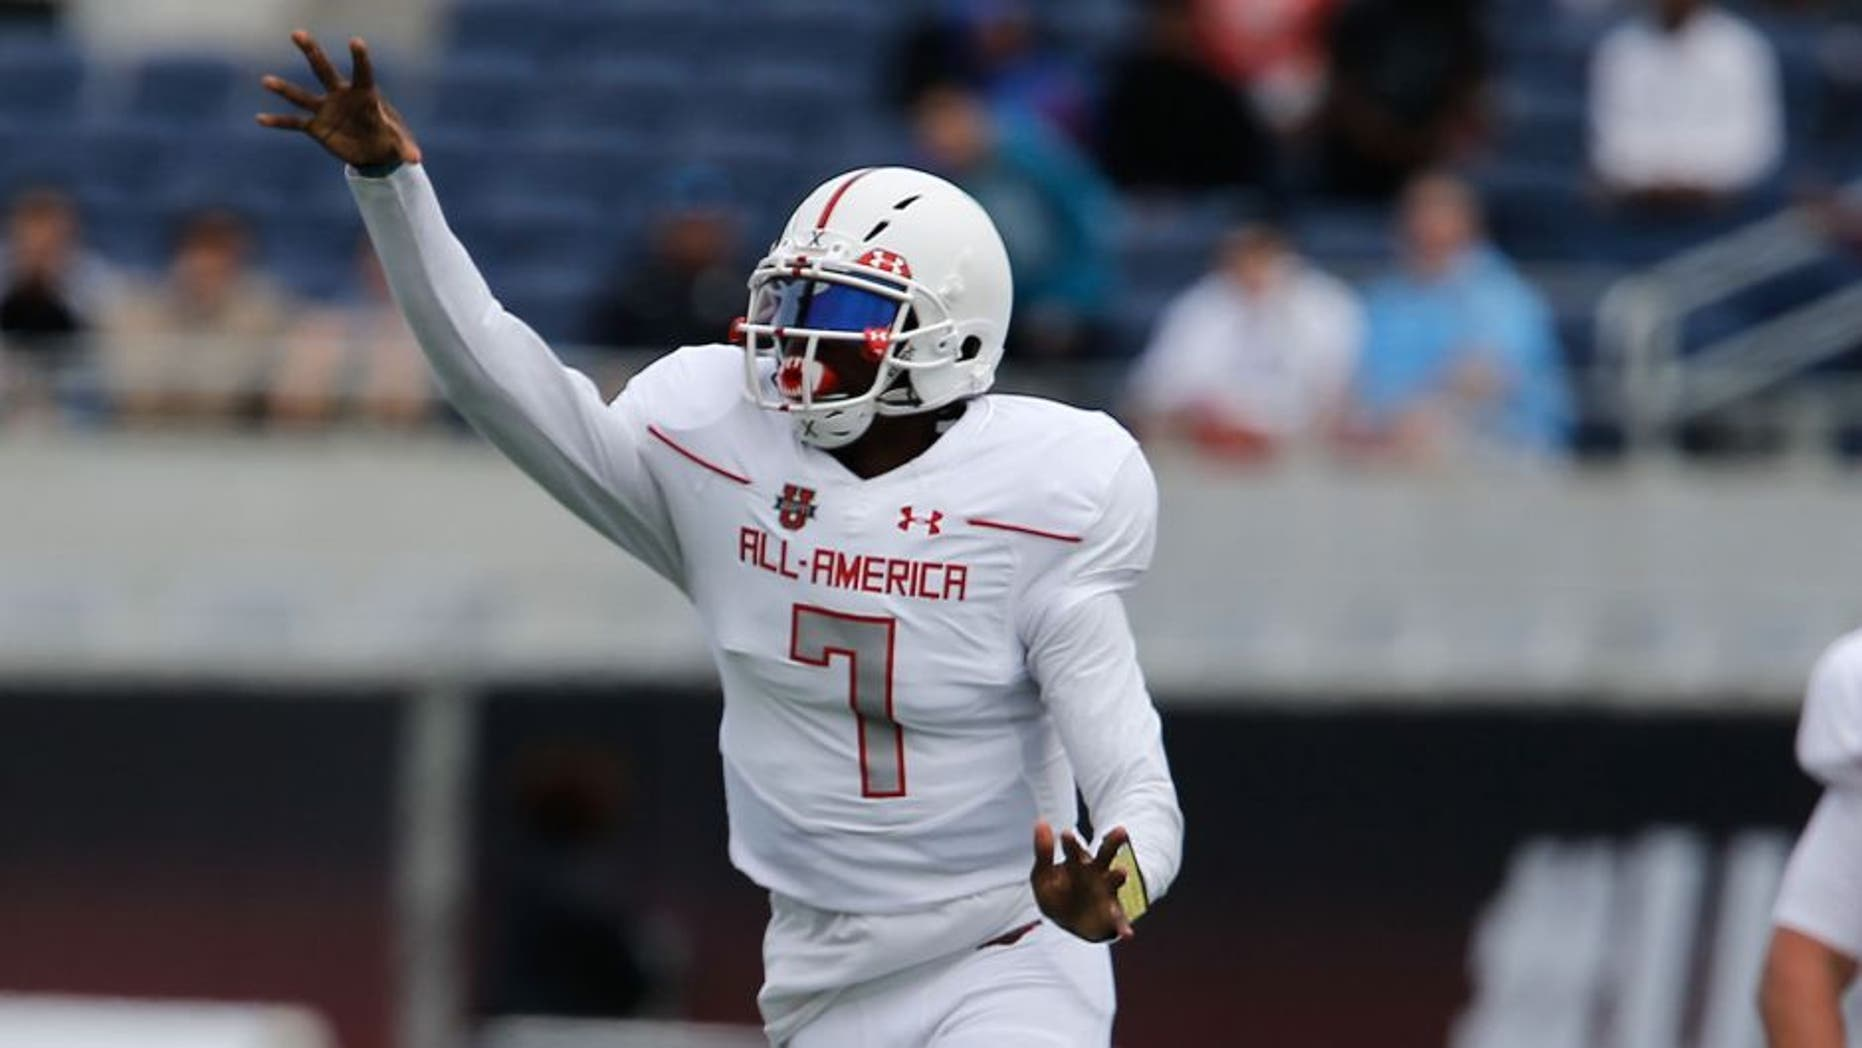 Jan 2, 2016; Orlando, FL, USA; Team Highlight player Dwayne Haskins throws the ball in the Under Armour All American Football Game at the Orlando Citrus Bowl. Team Highlight beat Team Armour 27-0. Mandatory Credit: Reinhold Matay-USA TODAY Sports